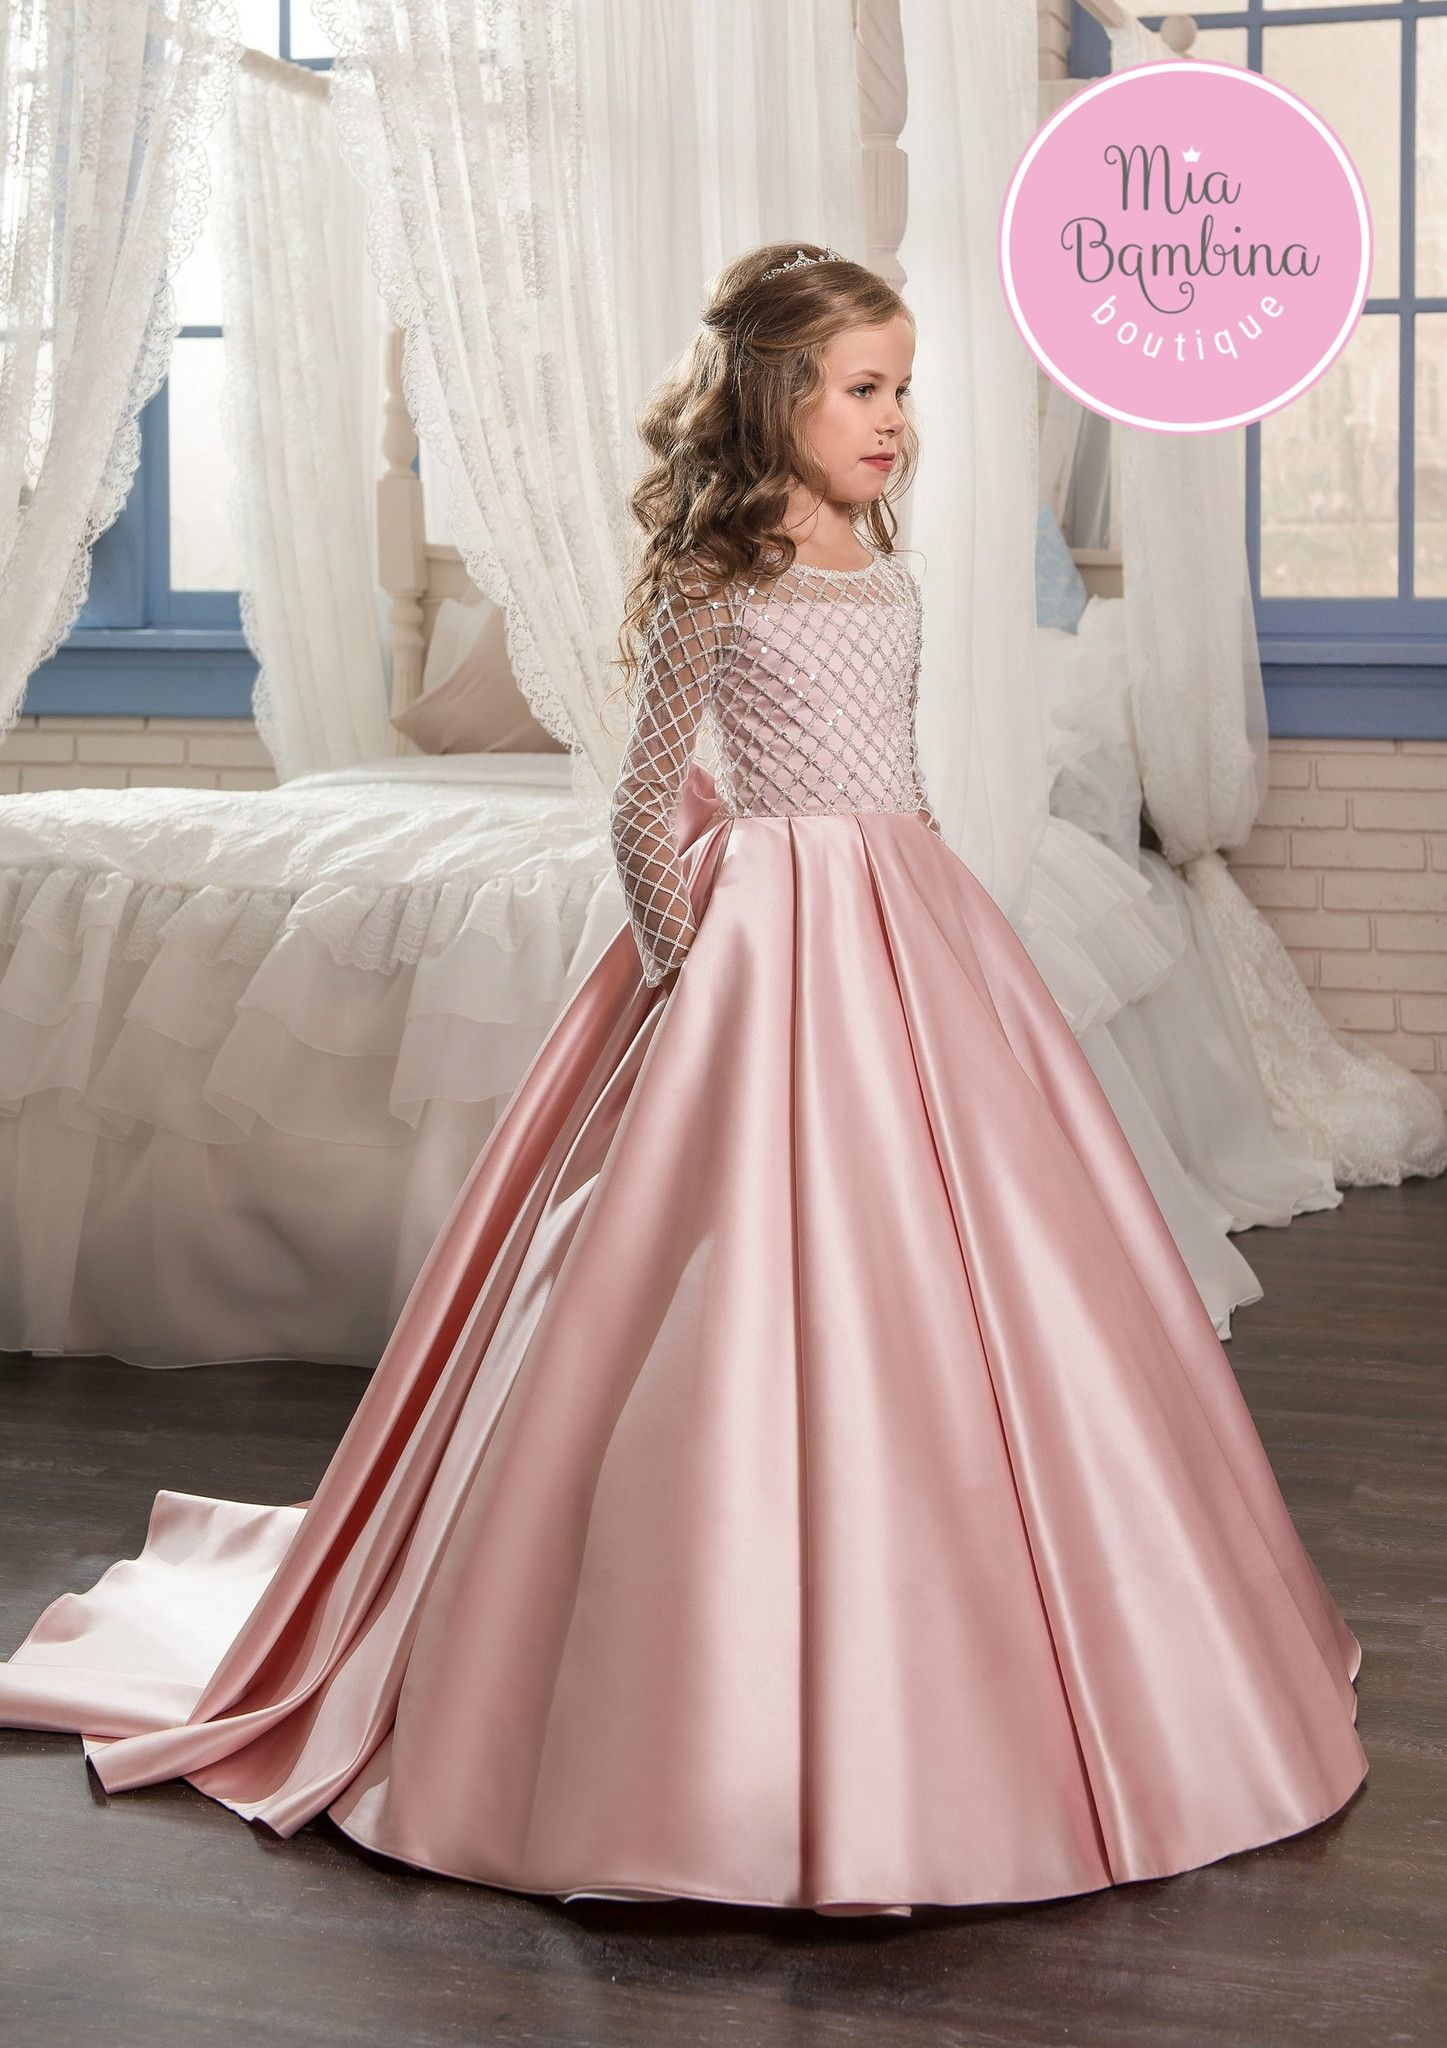 This chic Toronto flower girl dress is a long satin ball gown for  vintage-inspired weddings. It features a long-sleeved top embroidered with  textured ... eb6f71fce9f3